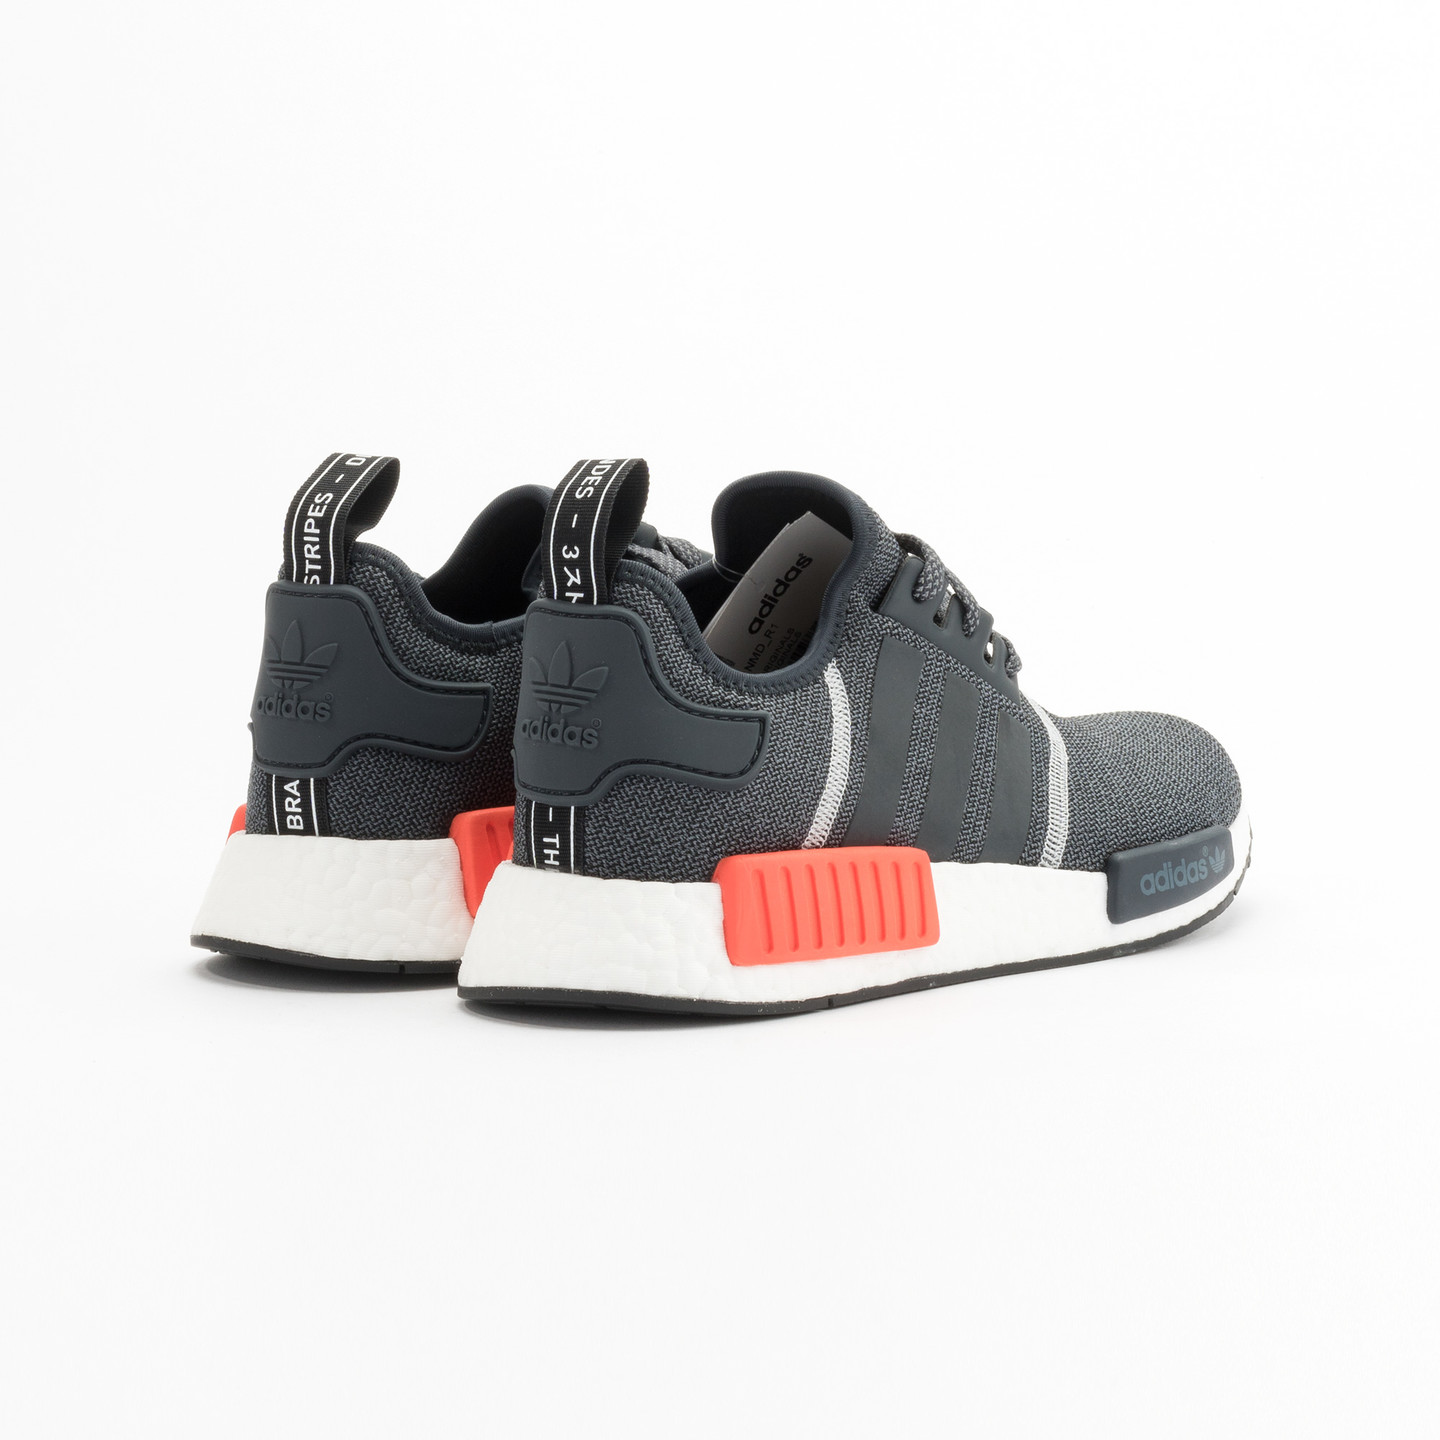 Adidas NMD R1 Runner Dark Grey / Semi Solar Red S31510-46